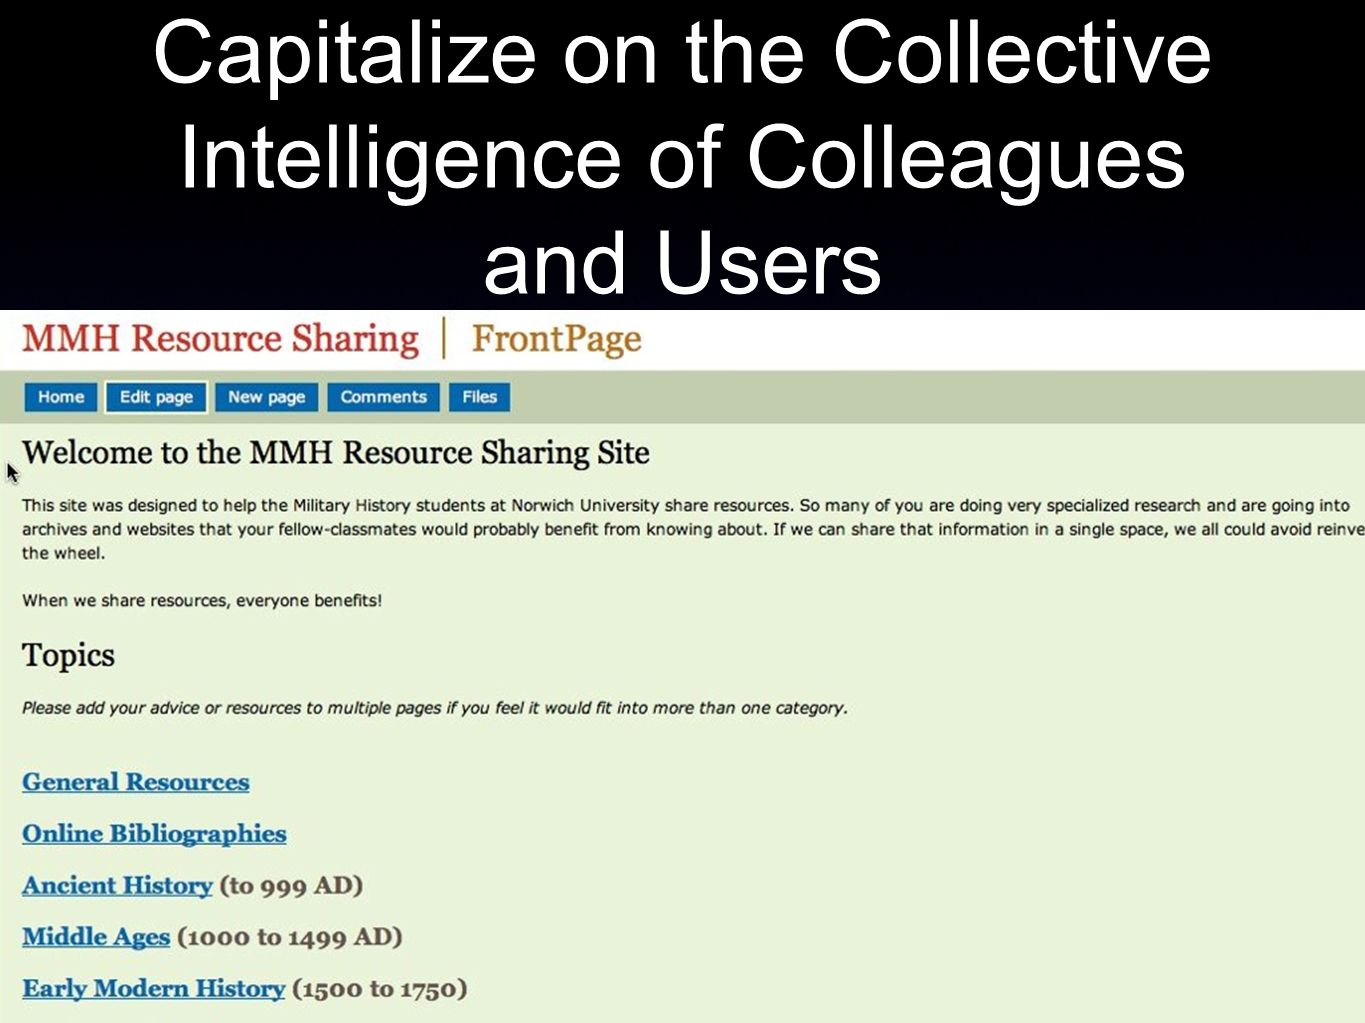 Capitalize on the Collective Intelligence of Colleagues and Users